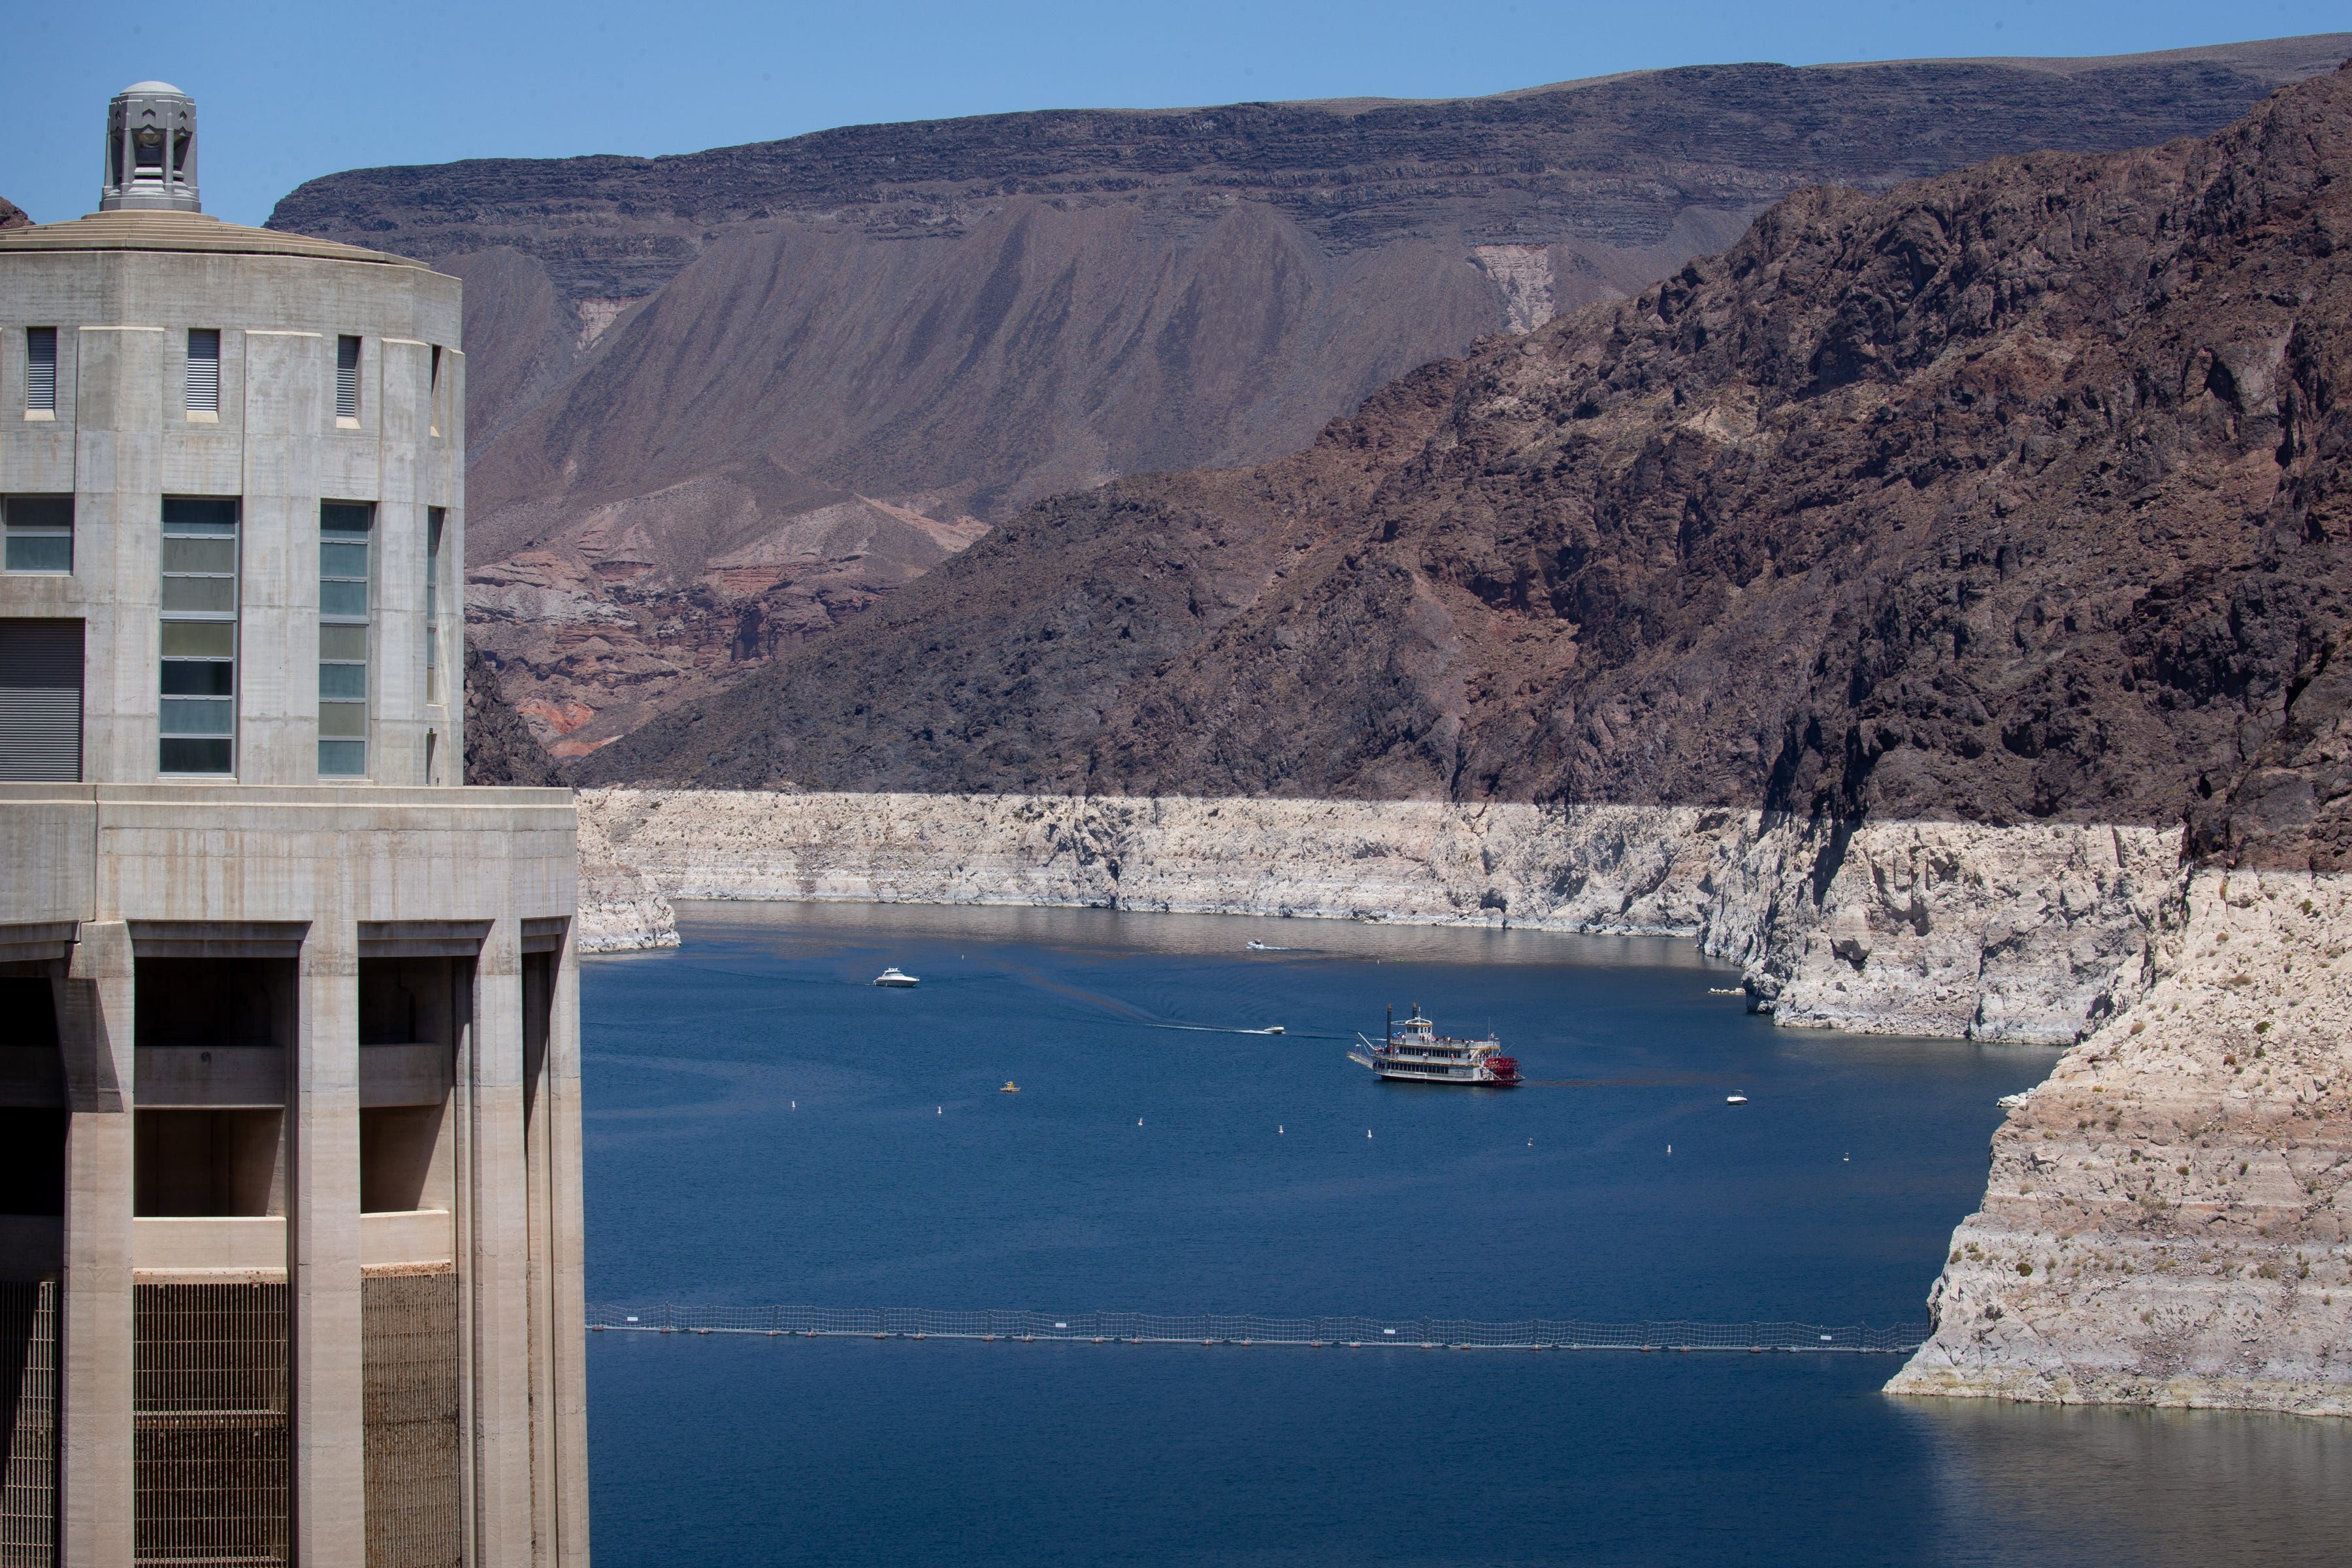 An intake tower (left) stands in Lake Mead beside Hoover Dam, which straddles the Arizona-Nevada state line on the Colorado River.